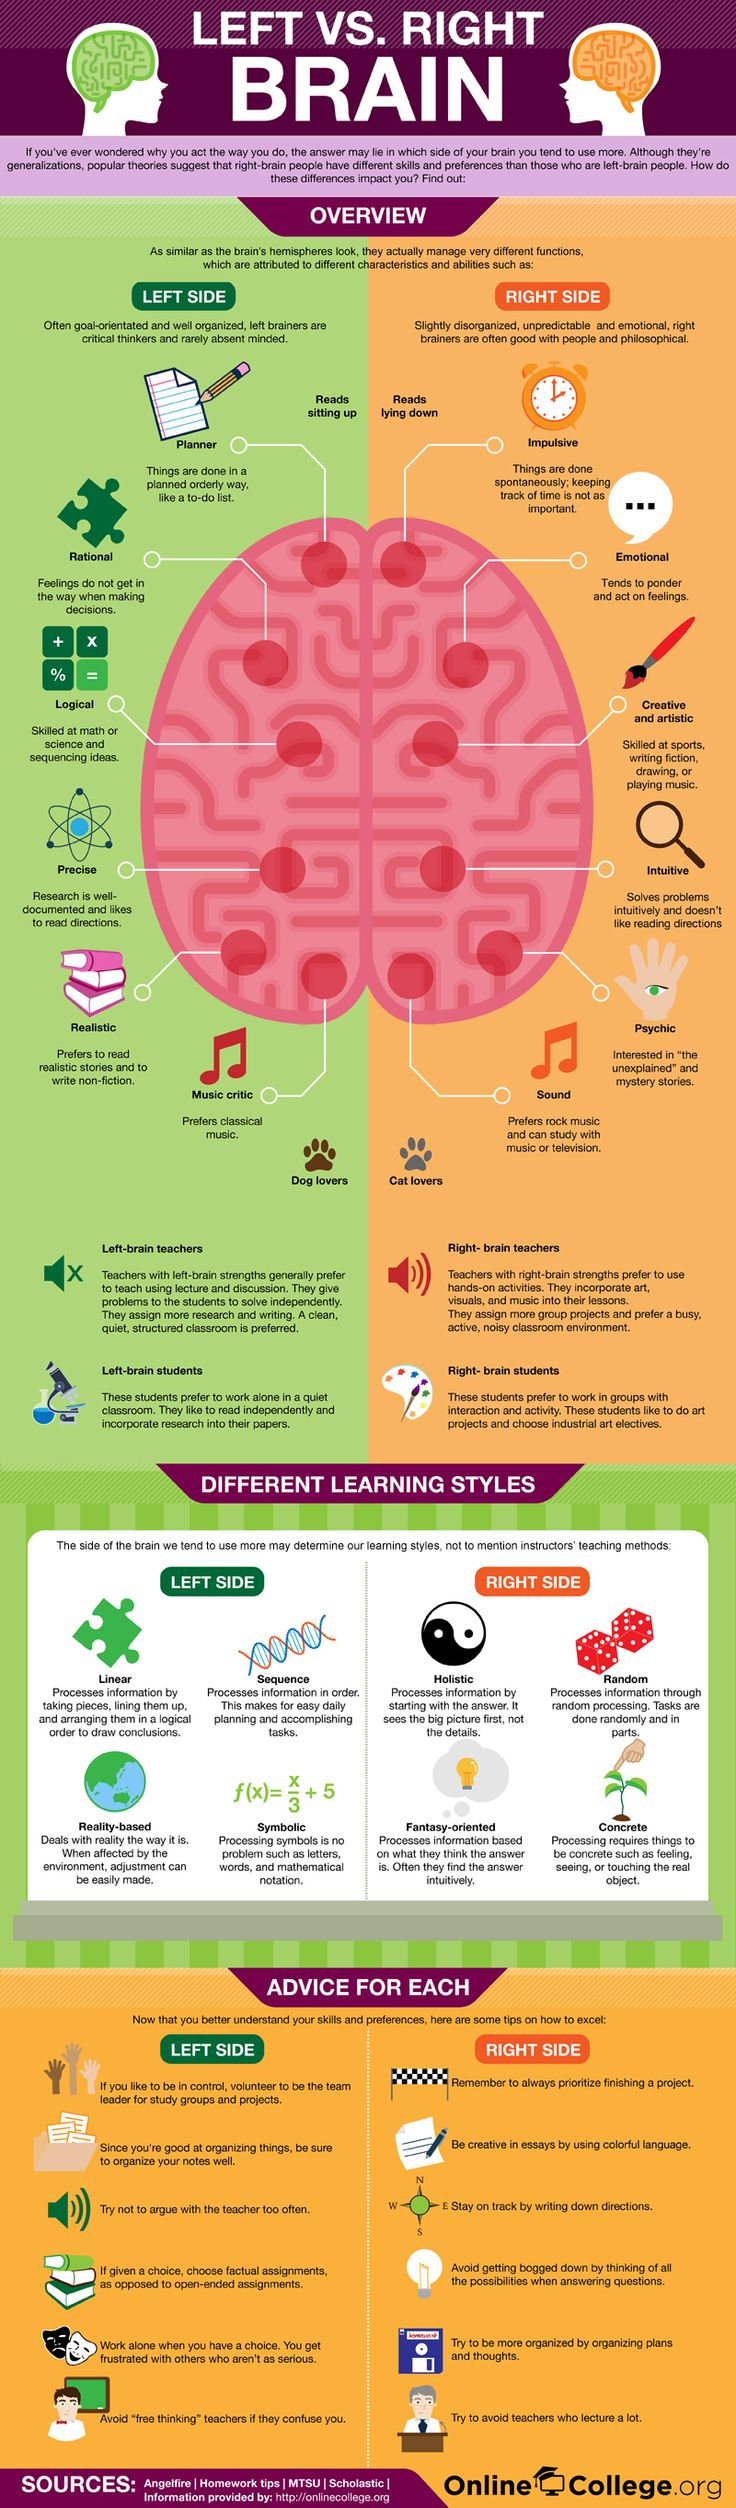 Left vs. Right Brain InfographicPersonalized Test, Leftright Brain, Stuff, Learning Style, Leftrightbrain, Leftbrain, Interesting, Left Brain, Infographic